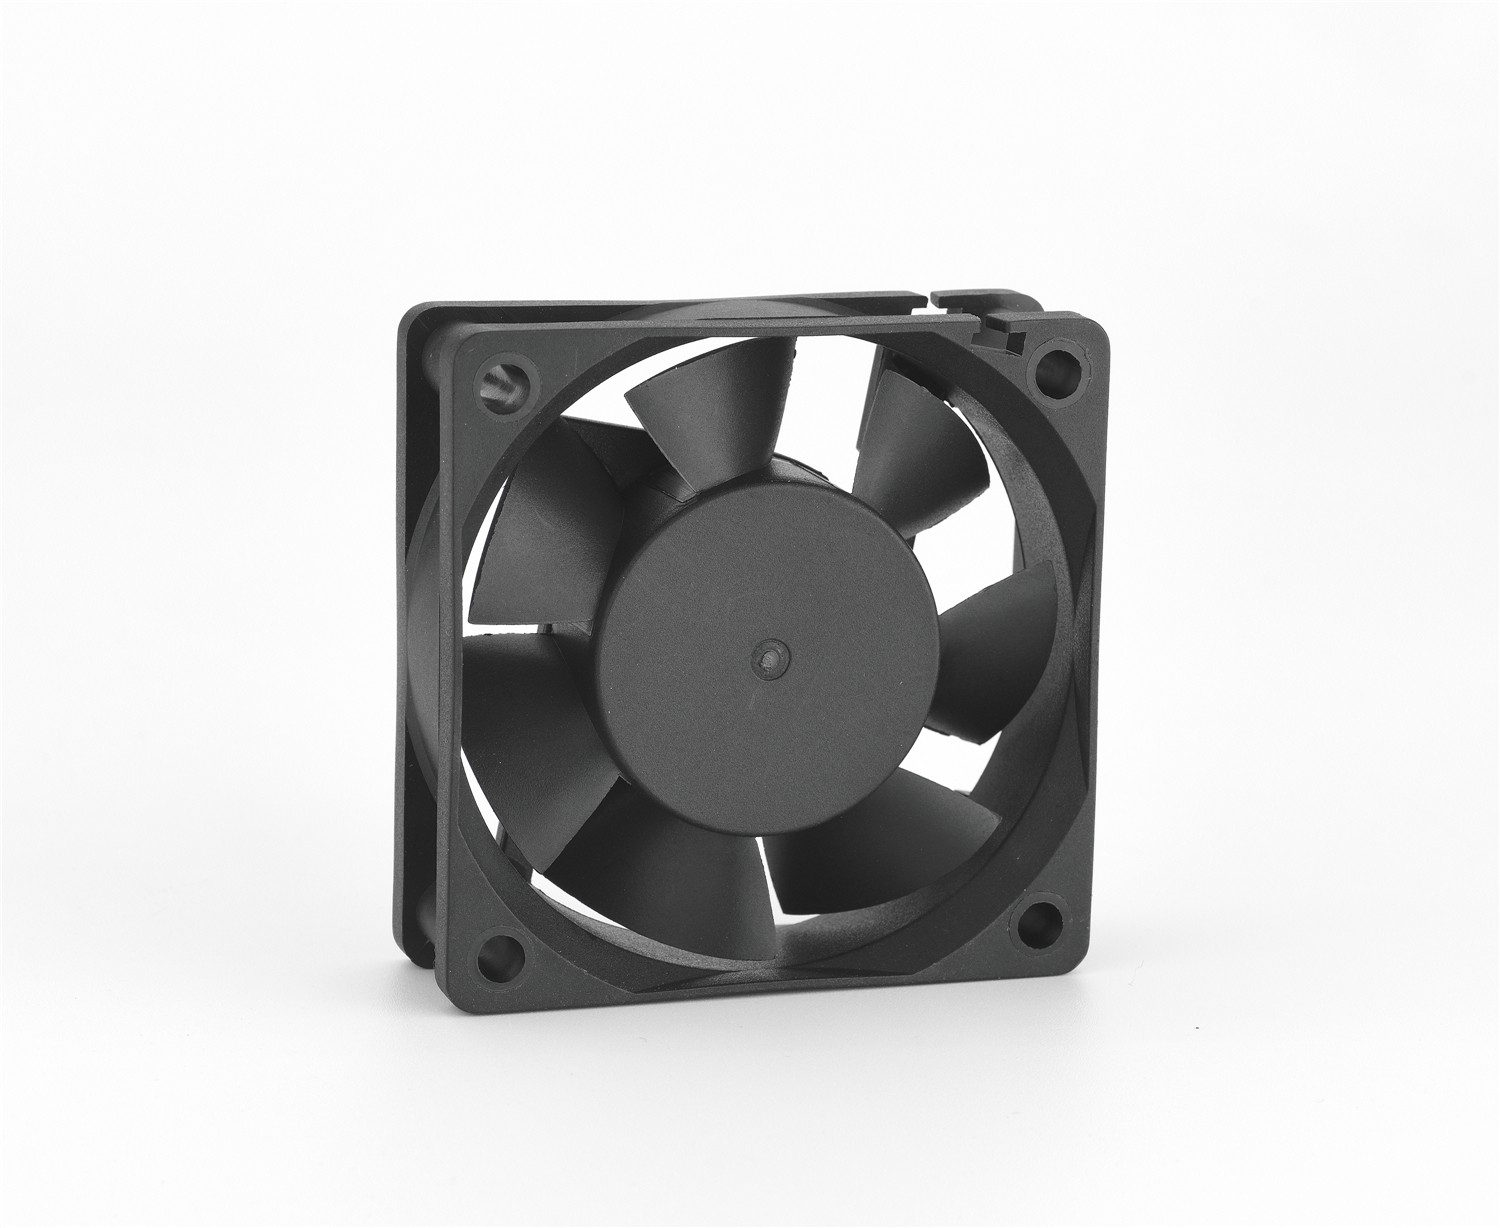 60mm axial fan